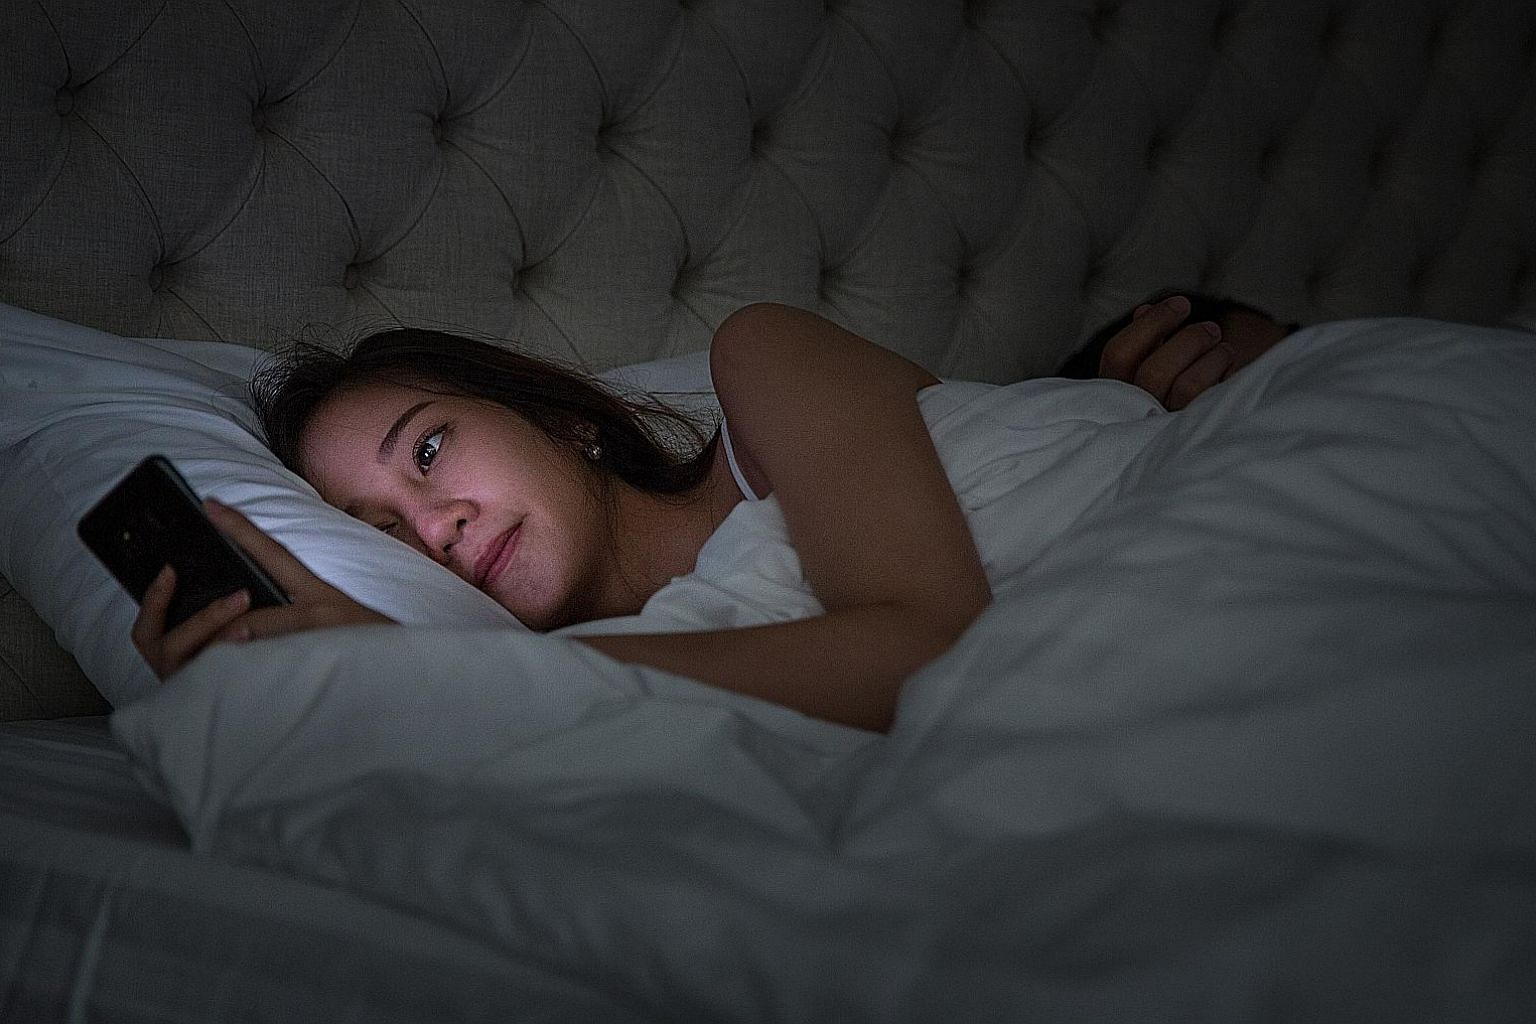 Increased screen time can disrupt one's sleep cycle as the blue light emitted from these screens can delay the release of sleep-inducing melatonin.